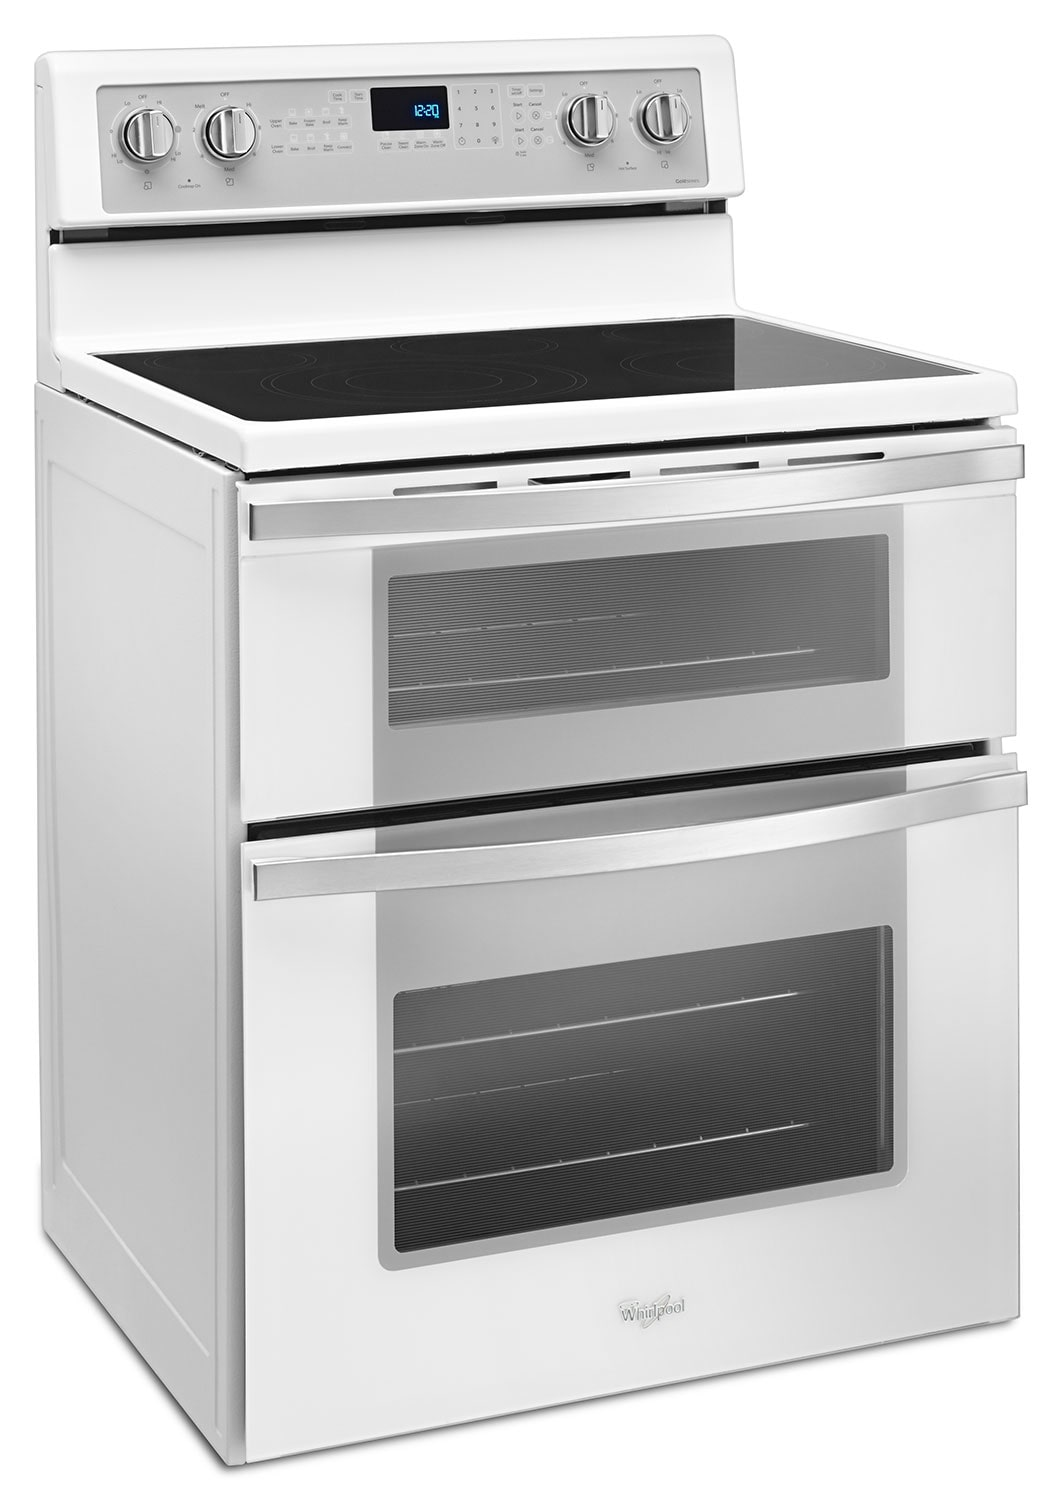 ft double oven electric range u2013 ywge745c0fh the brick